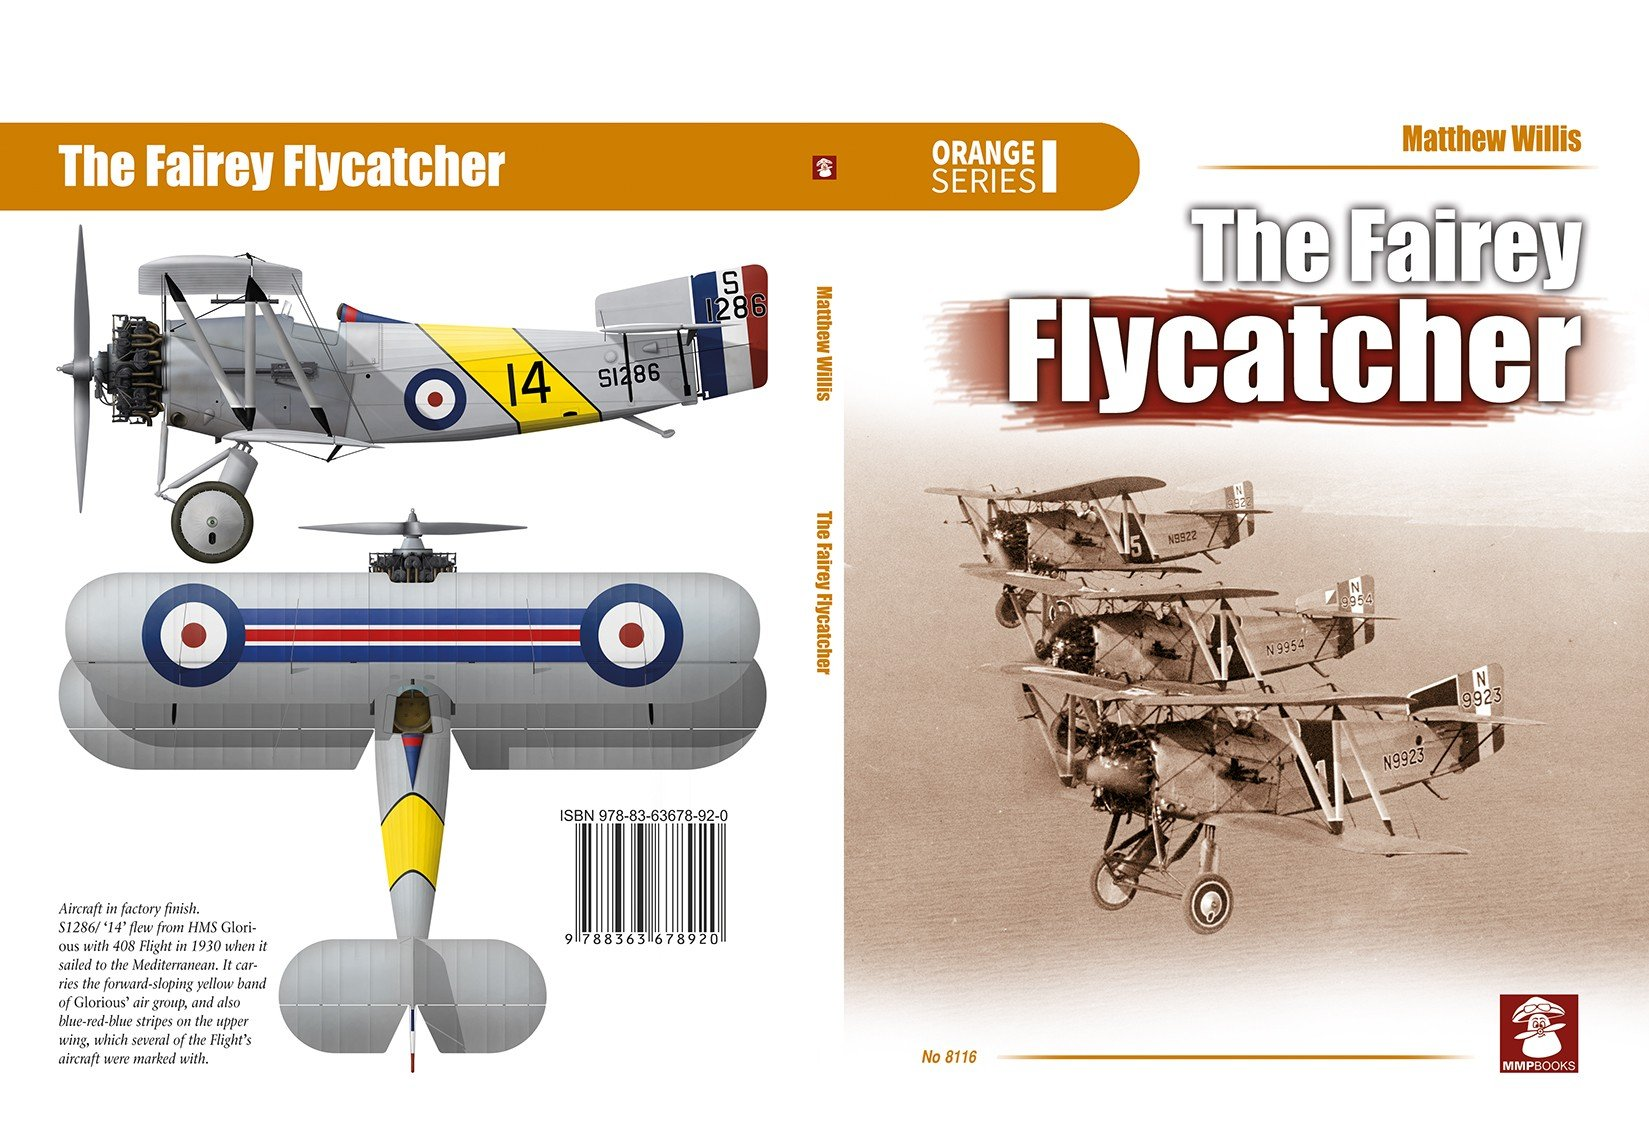 The Fairey Flycatcher